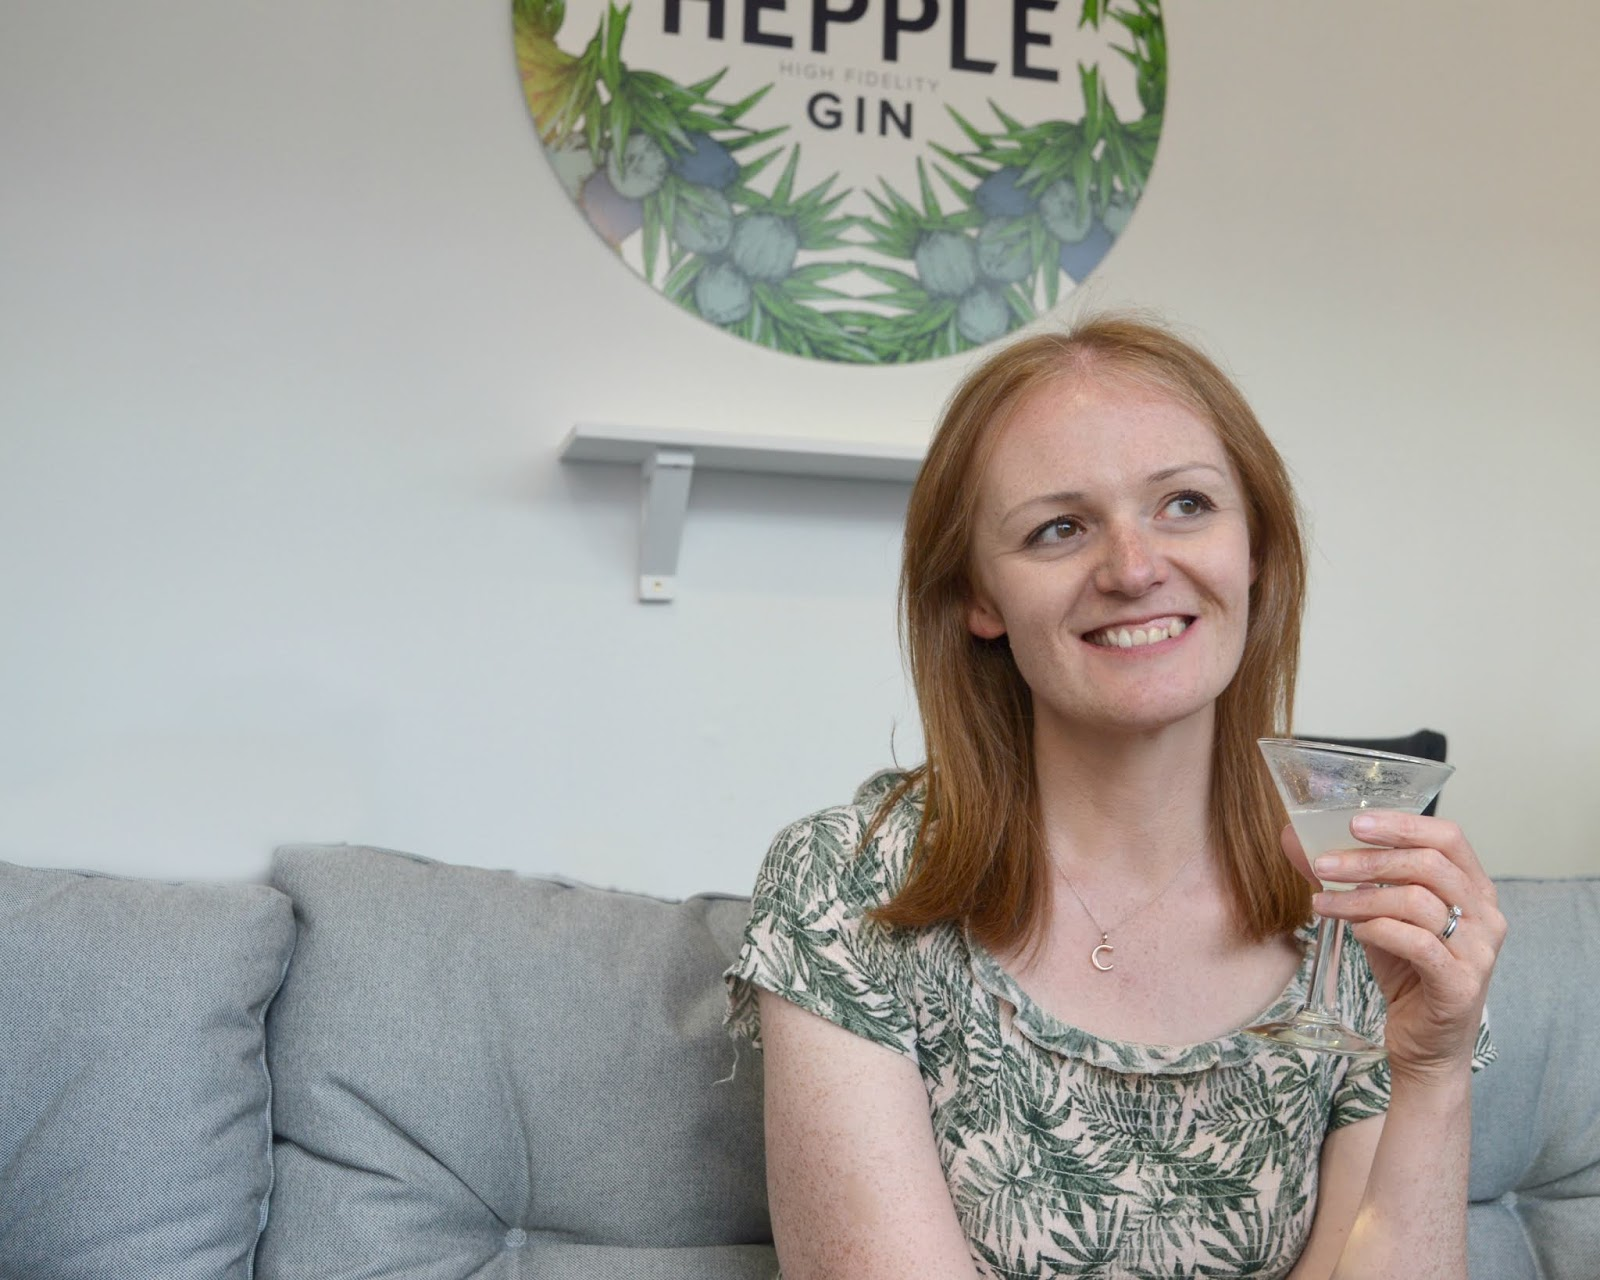 The Finest Food in the North at Fenwicks Food Hall, Newcastle - Hepple Gin Window